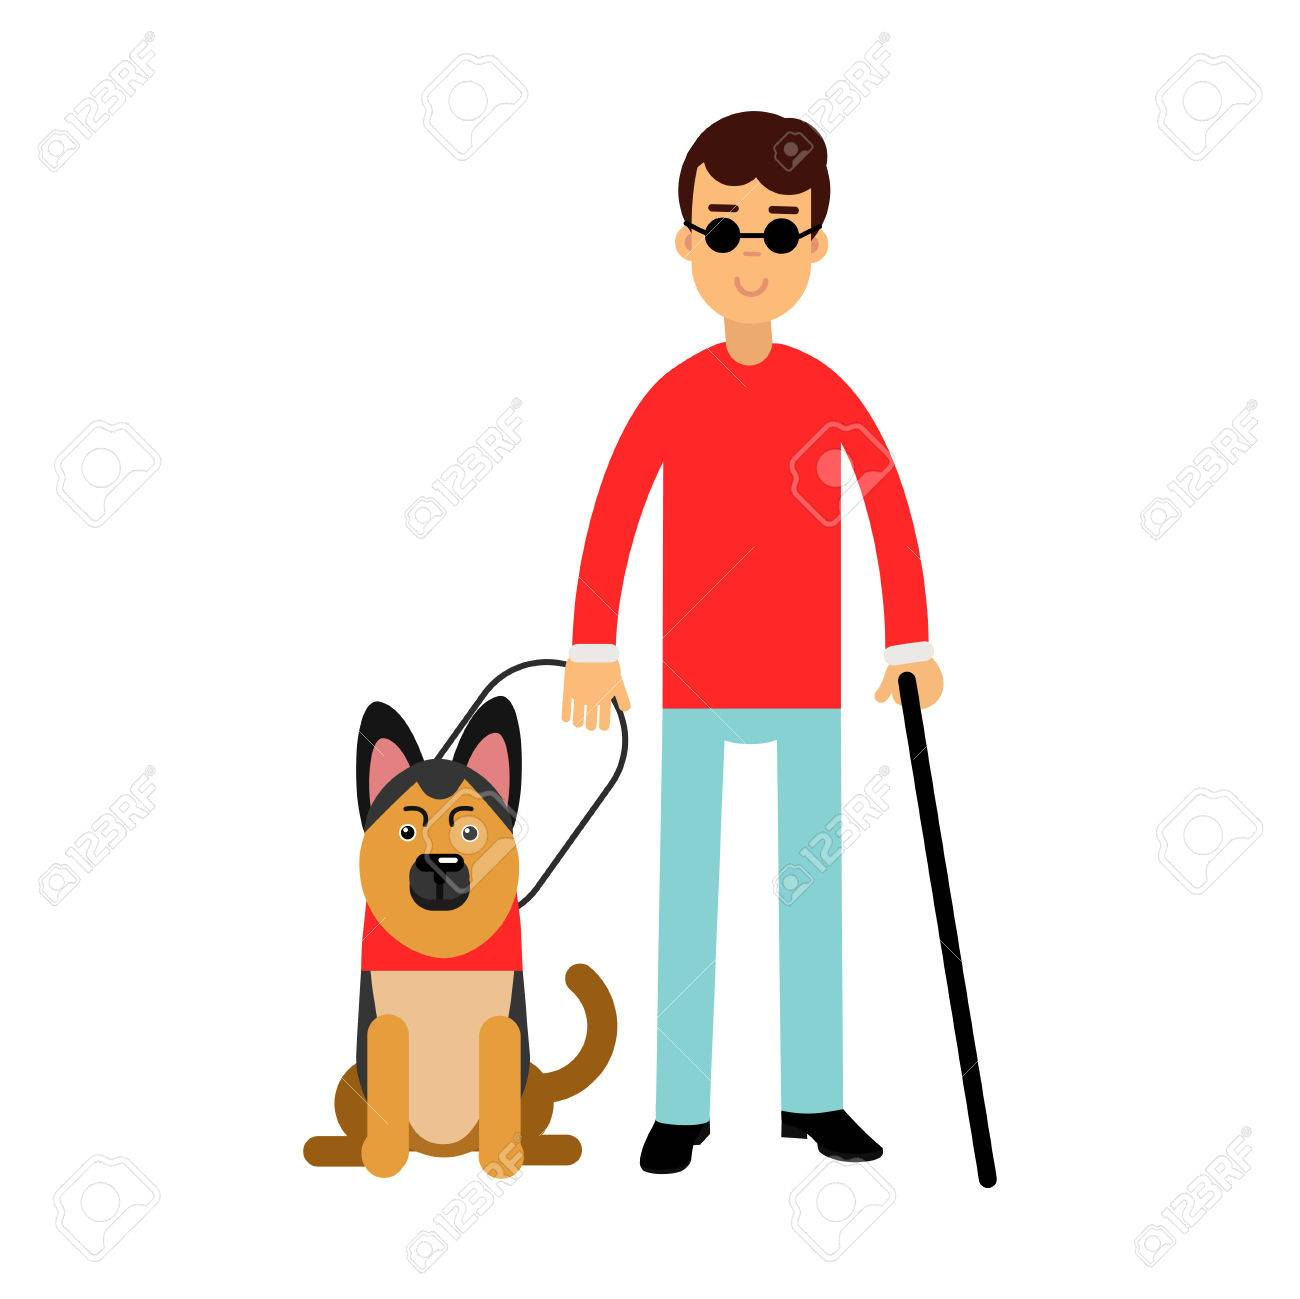 Seeing Eye Dog Clipart